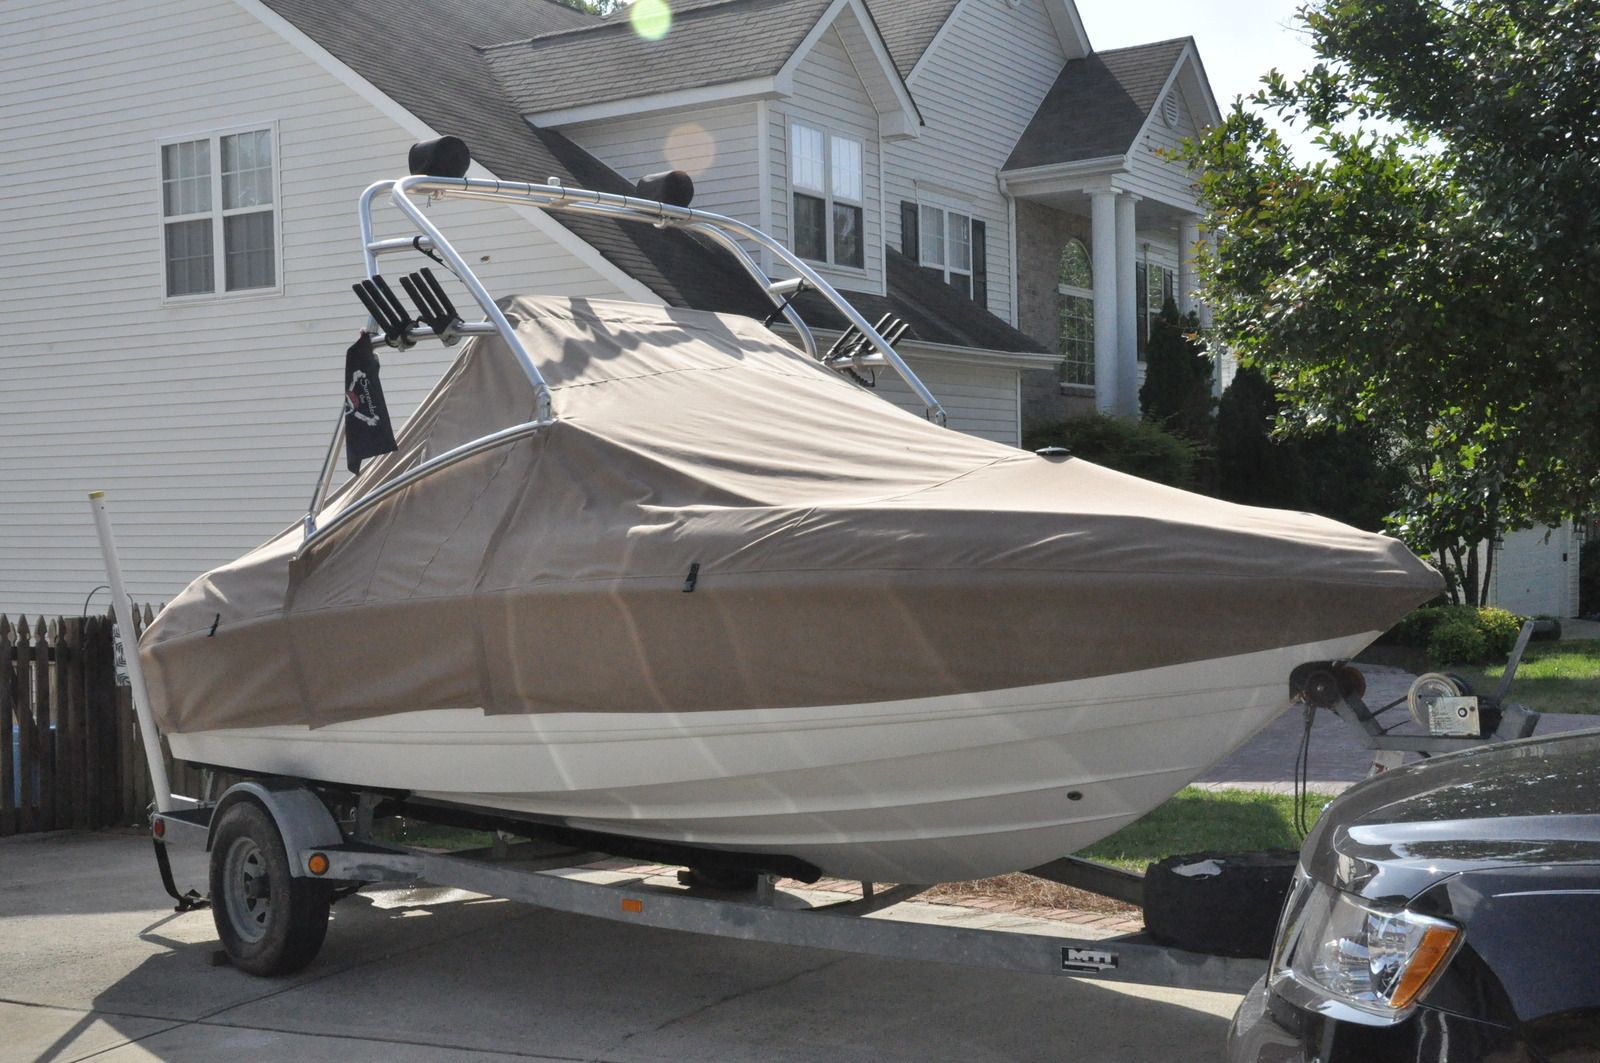 Sailrite Customer Carl N Made This Trailering Cover For His Boat Make Your Own Boat Cover With Supplies From Sailrite Com Marine Outdoor Fabric Boat Covers